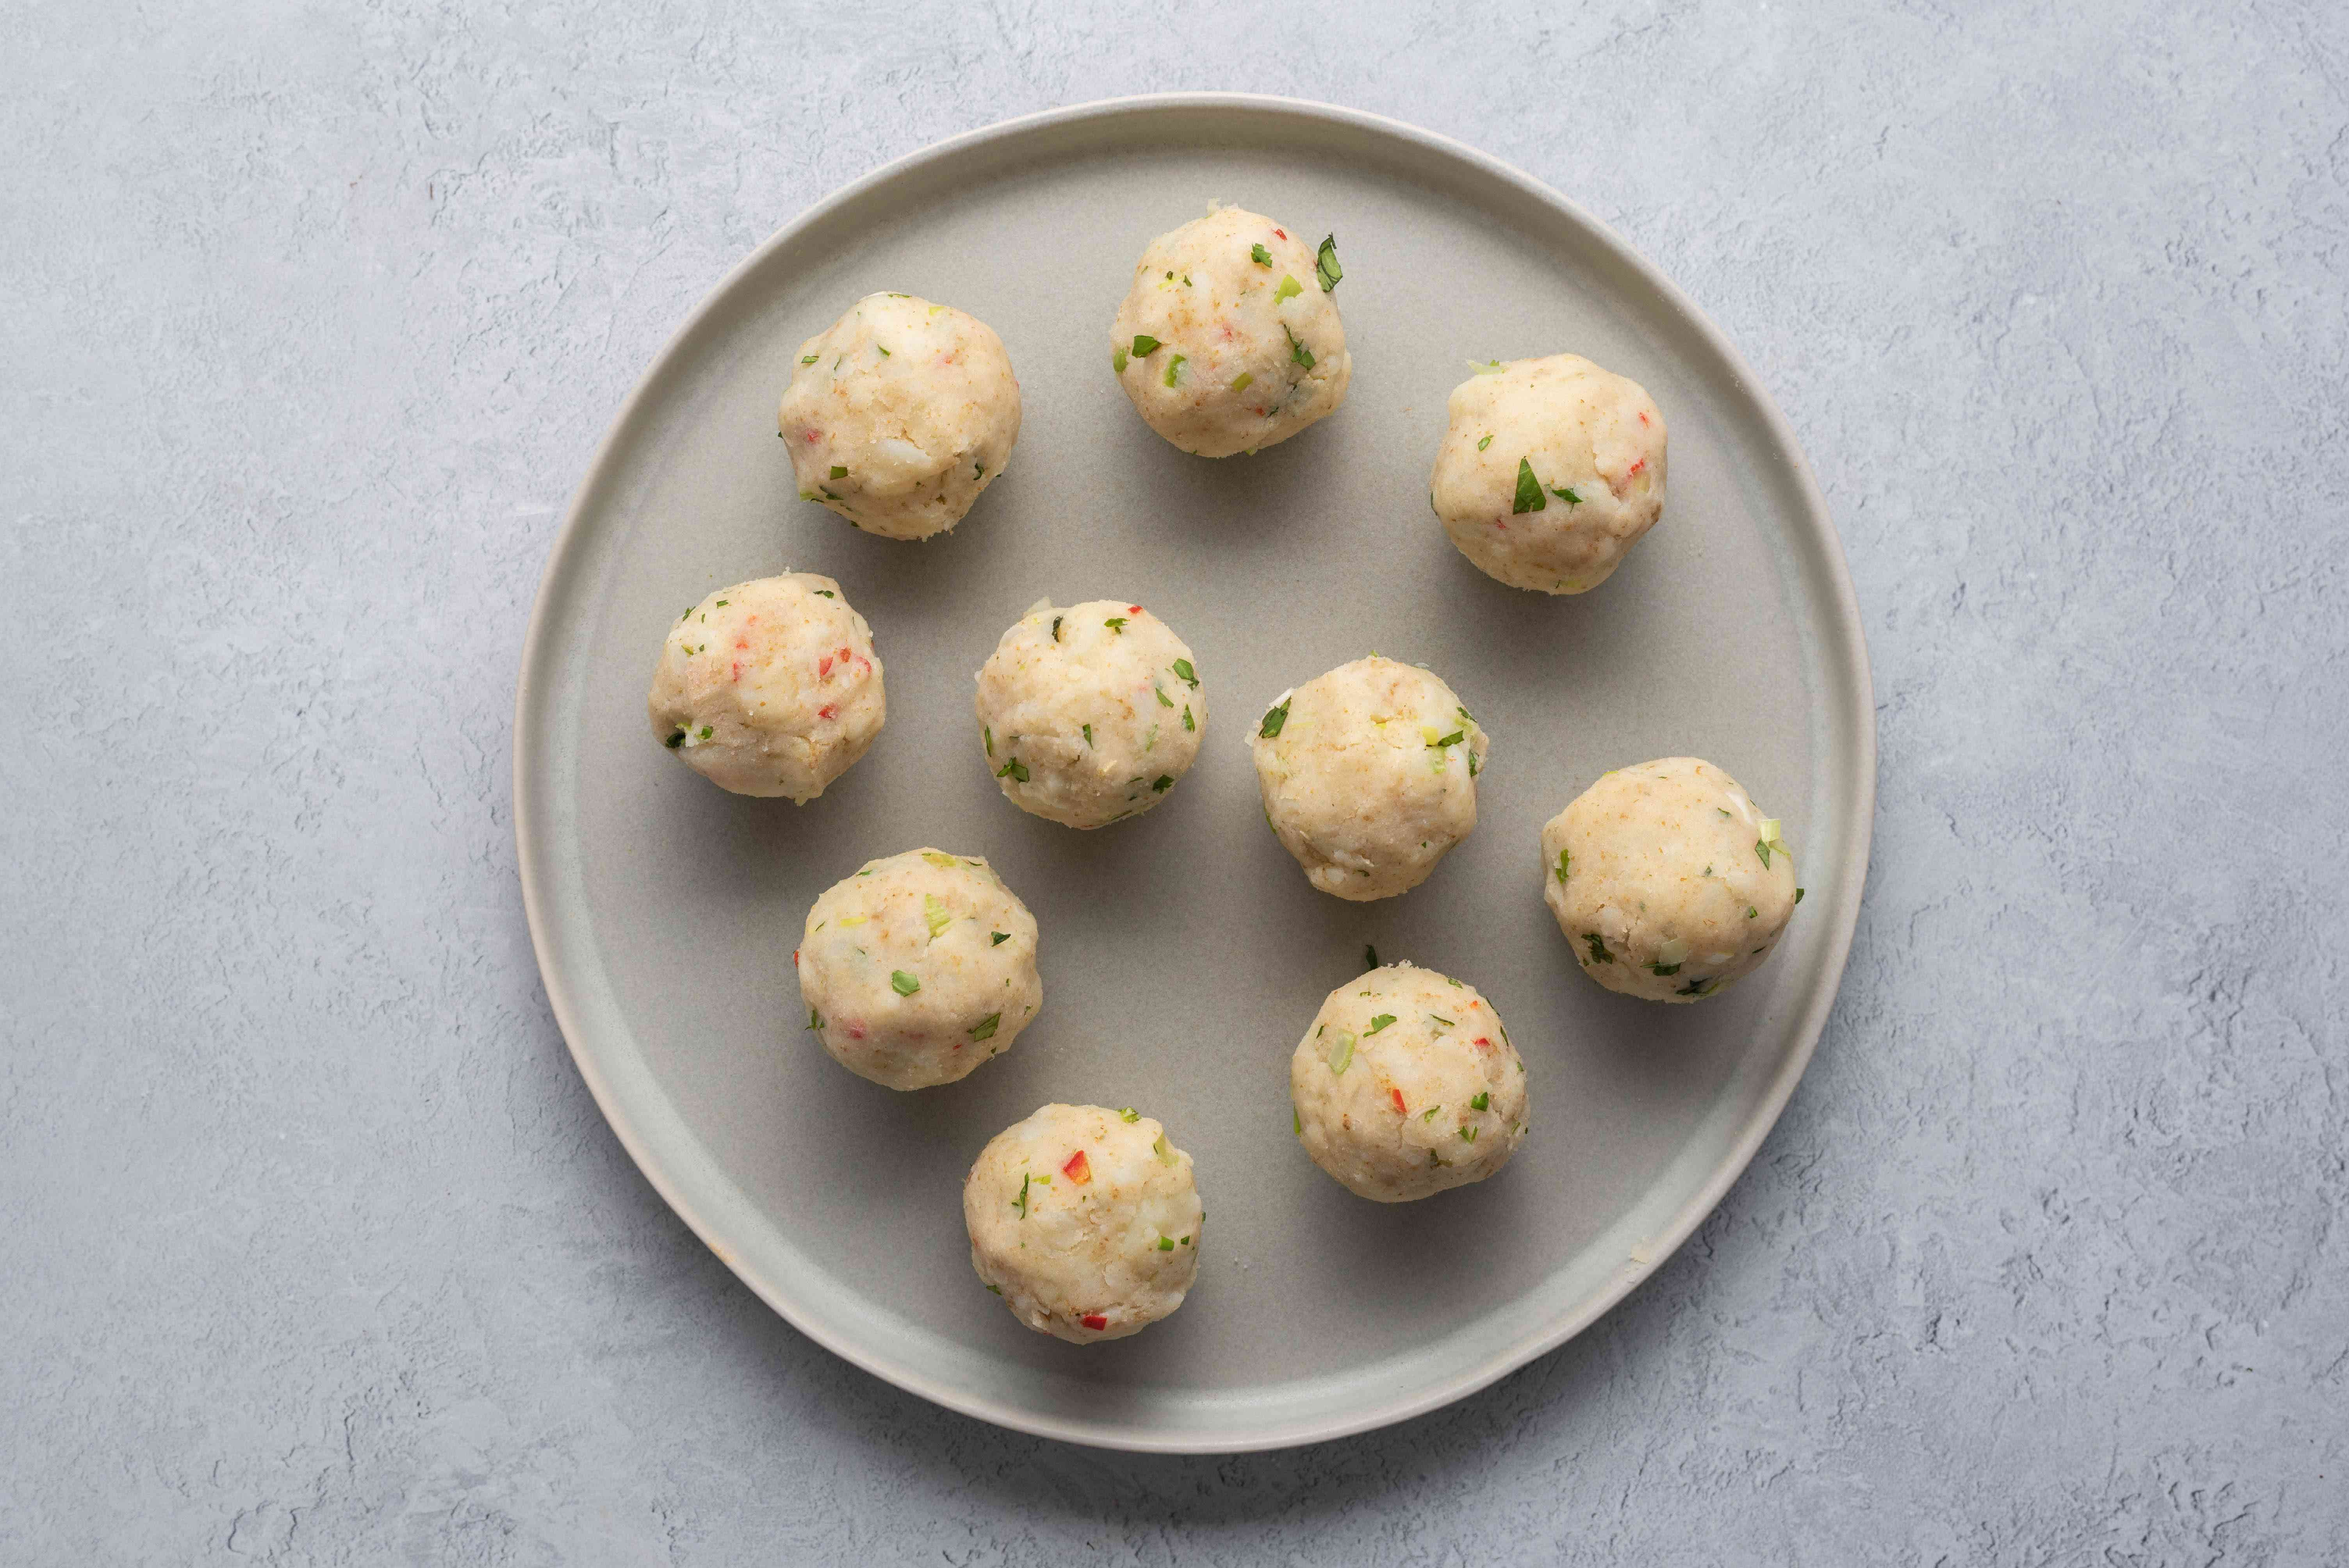 A plate of formed mashed potato balls